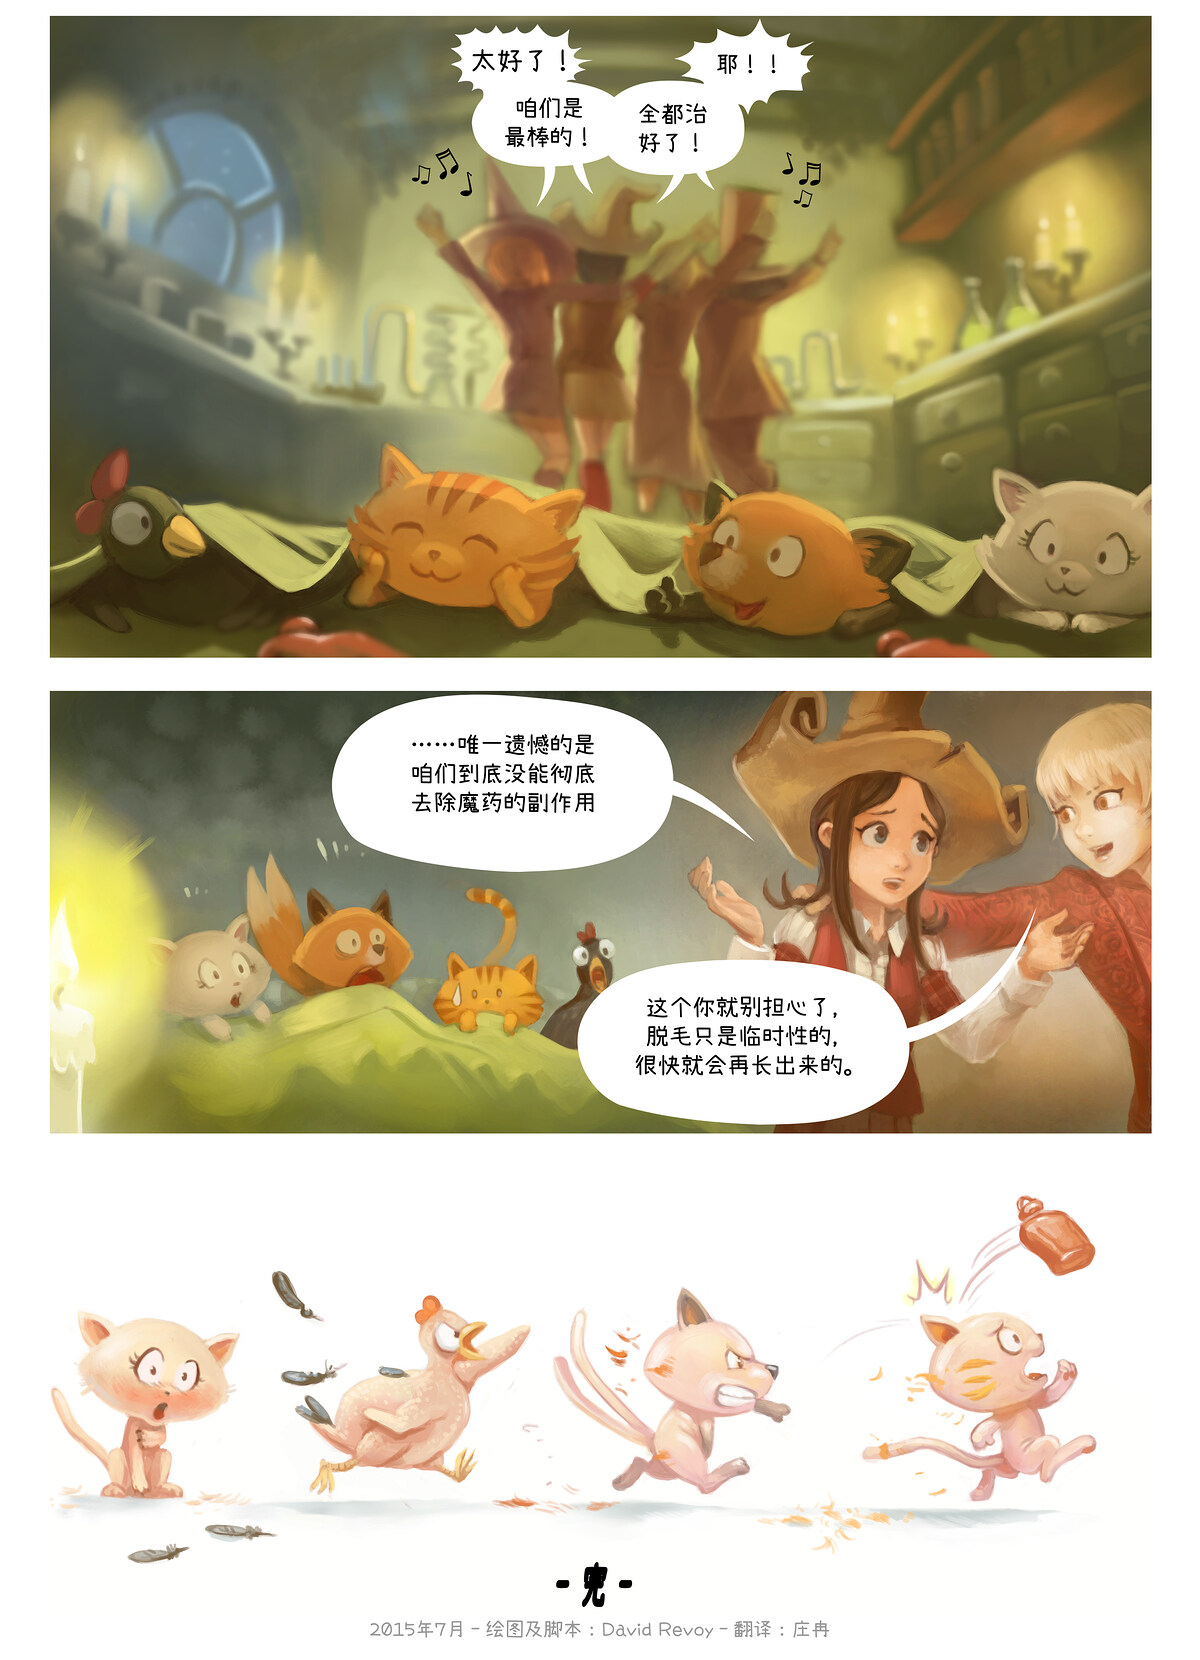 A webcomic page of Pepper&Carrot, 漫画全集 9 [cn], 页面 7